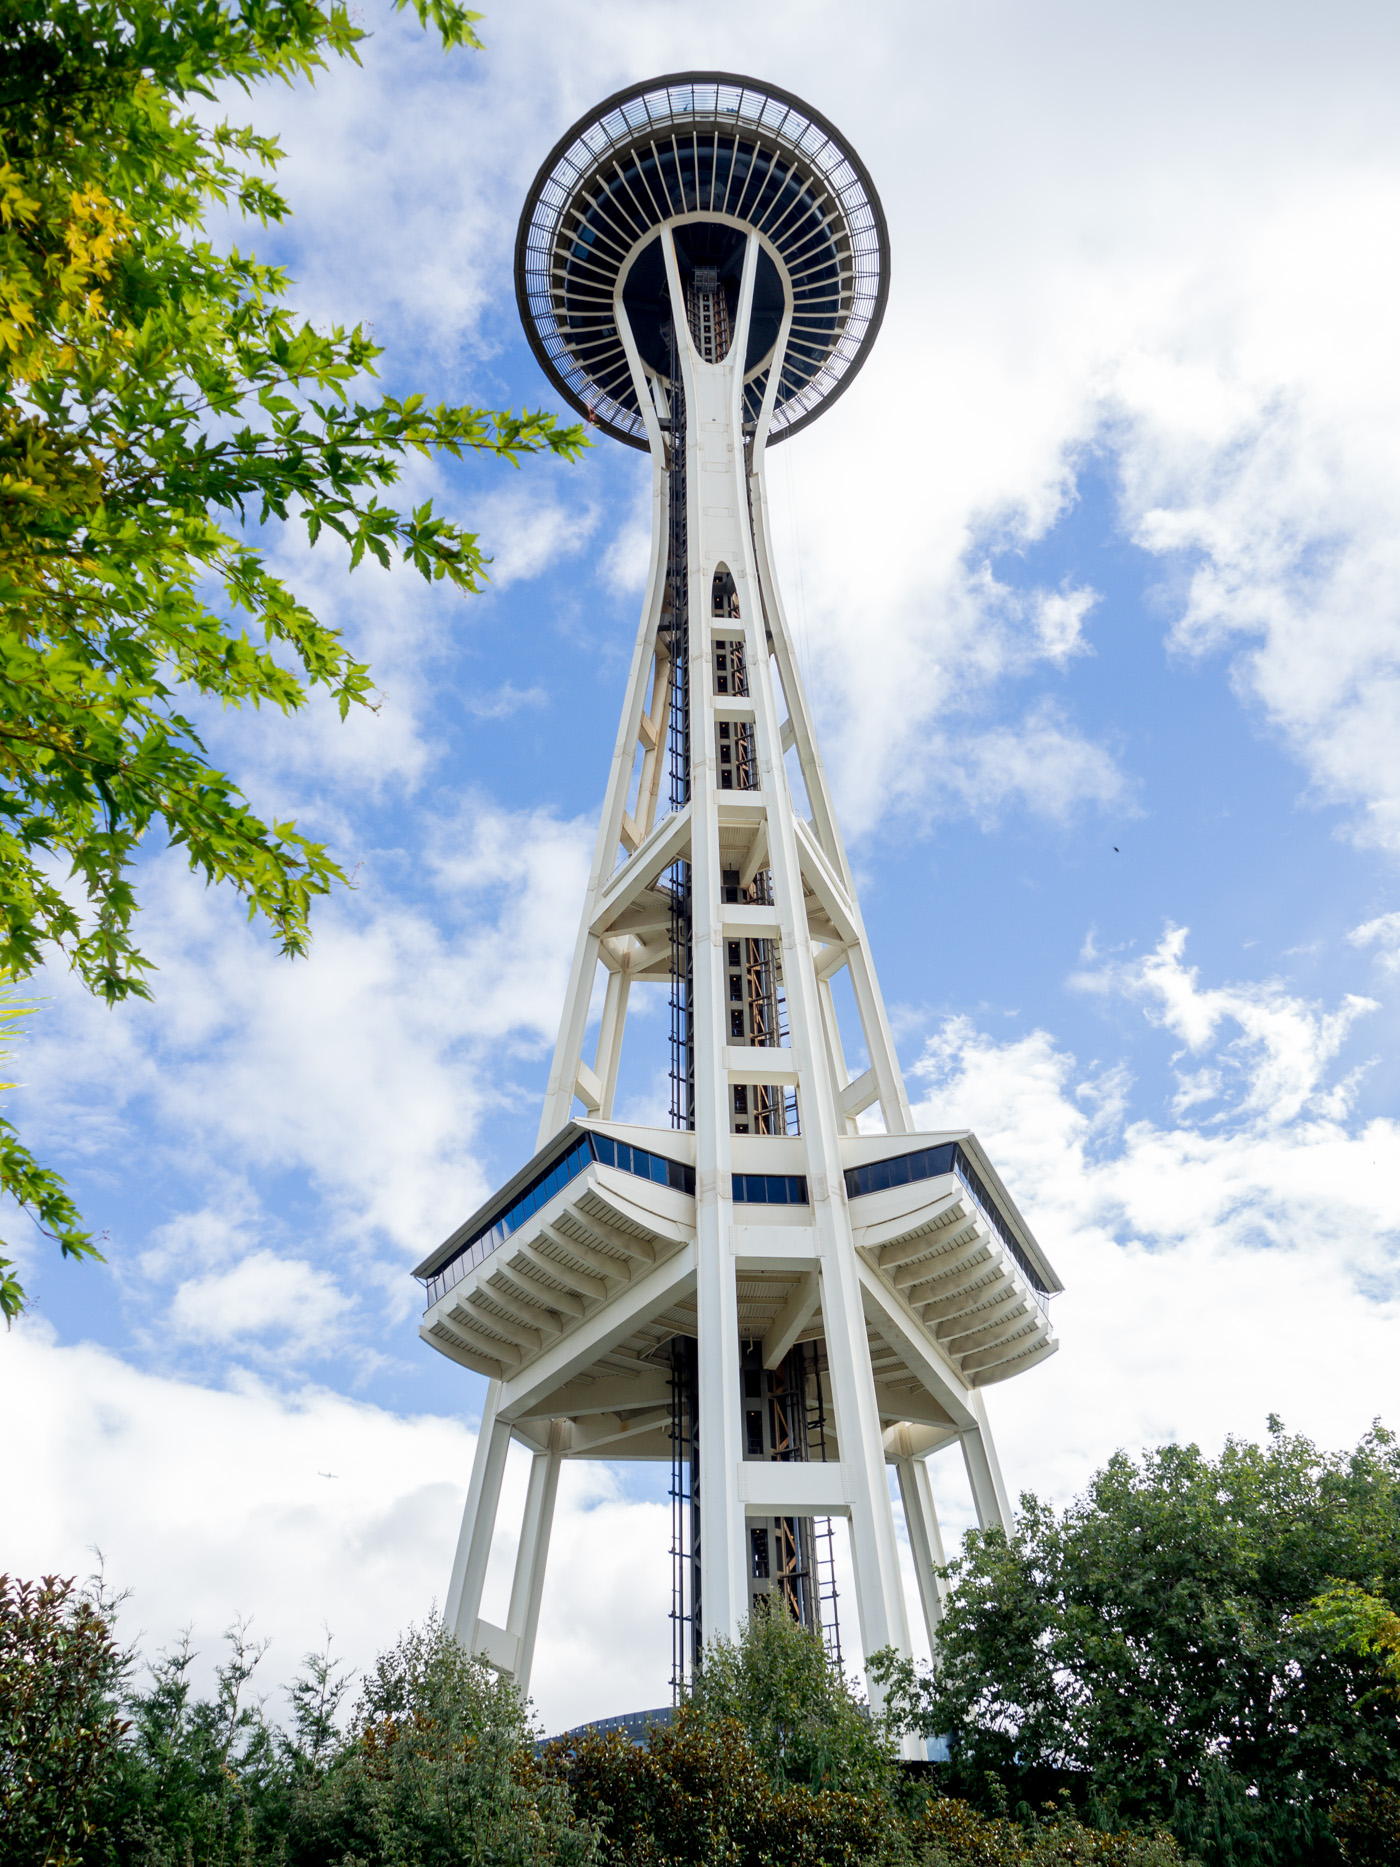 Bird's eye view of the Space Needle in Seattle